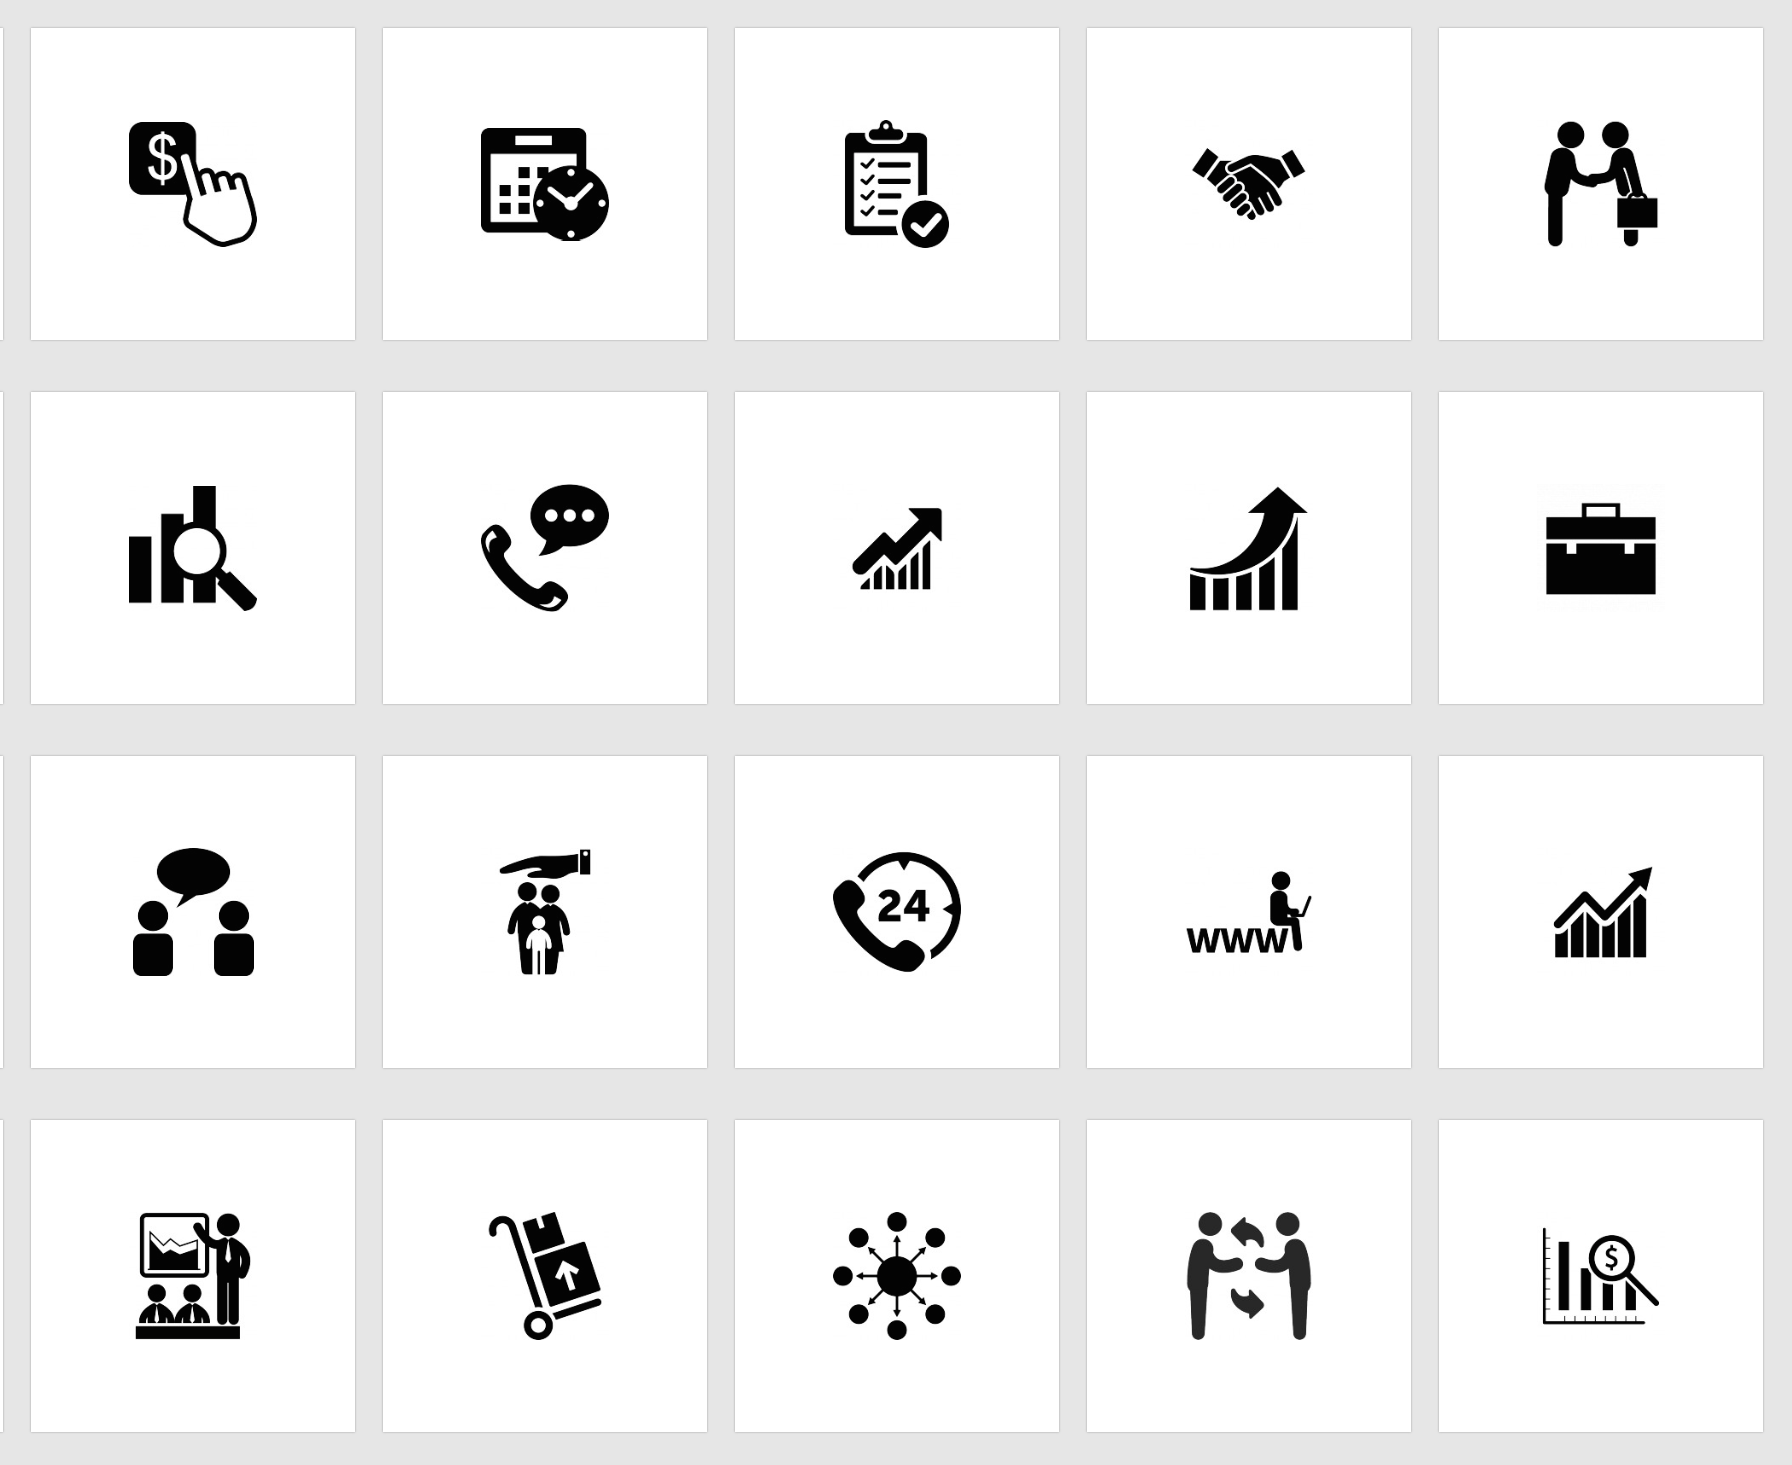 999 free business icons in vector format - The Graphic Mac